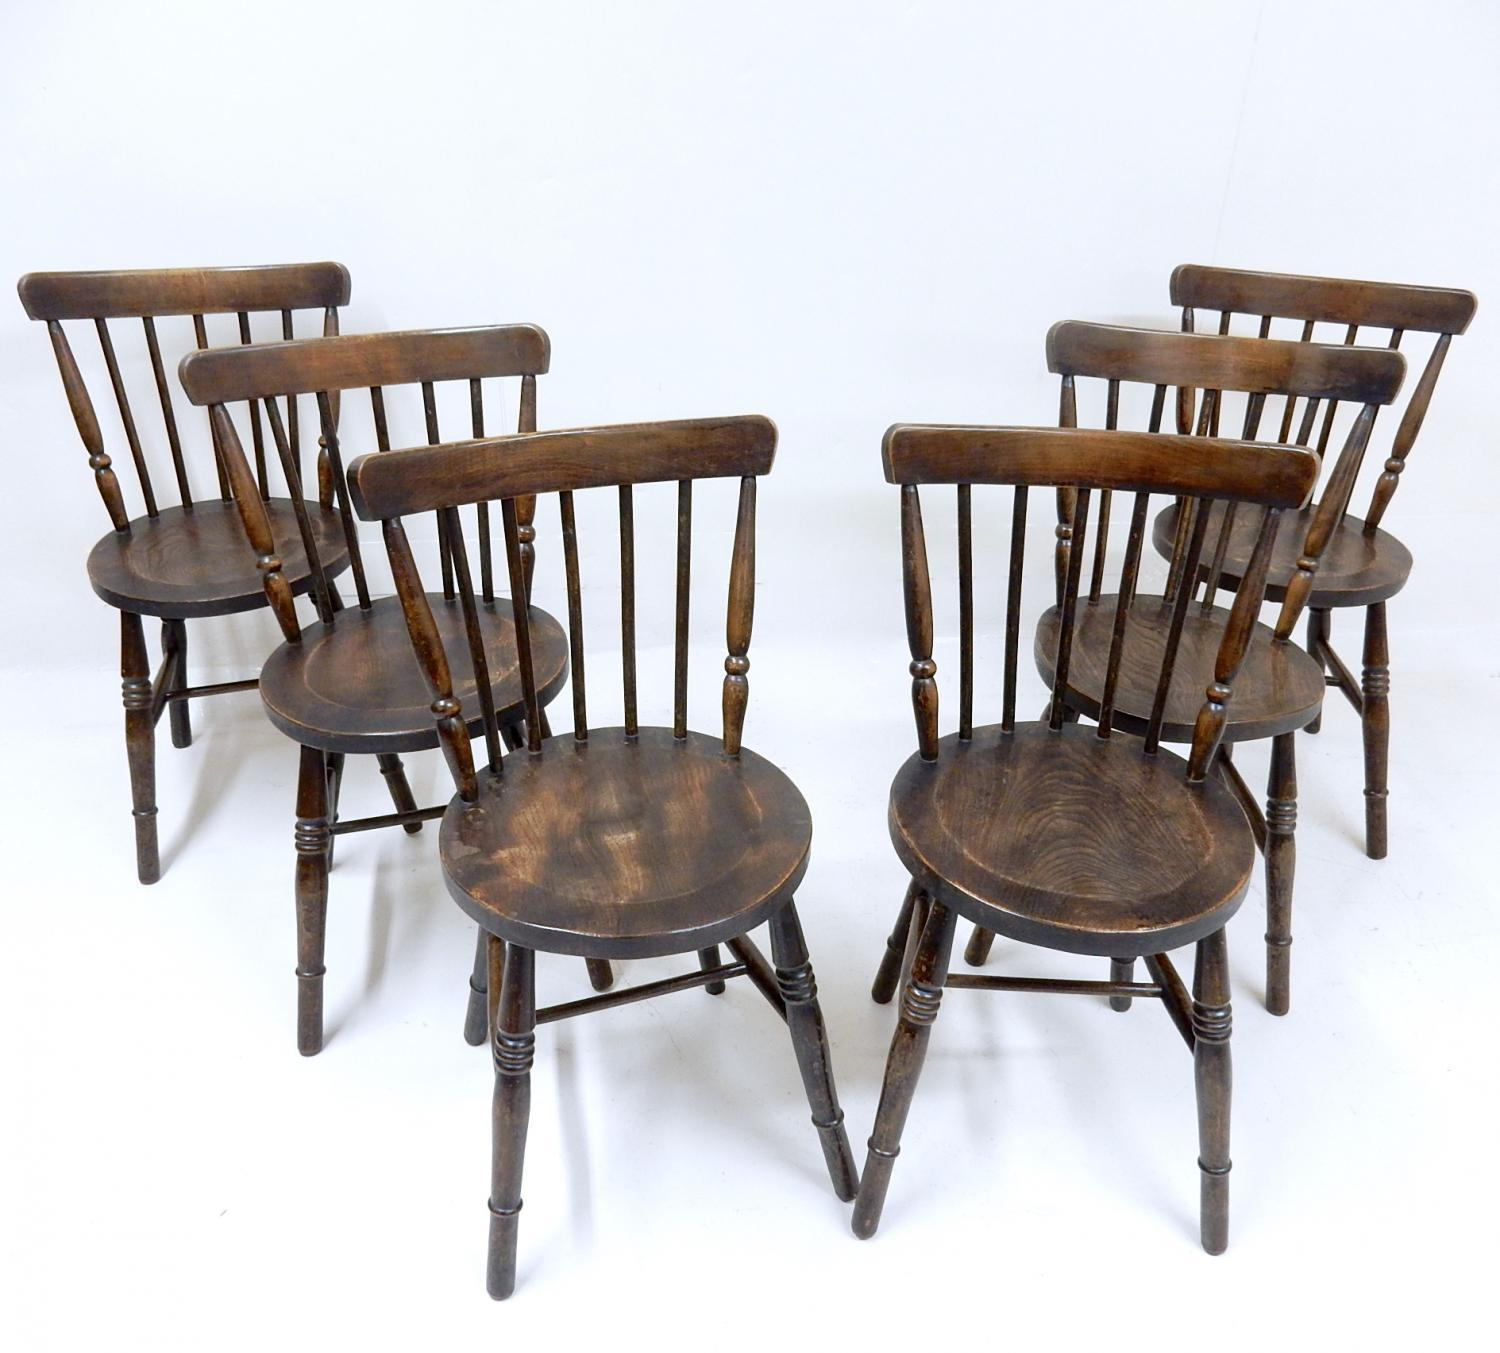 Country Kitchen Stools: Country Kitchen Chairs In Sold